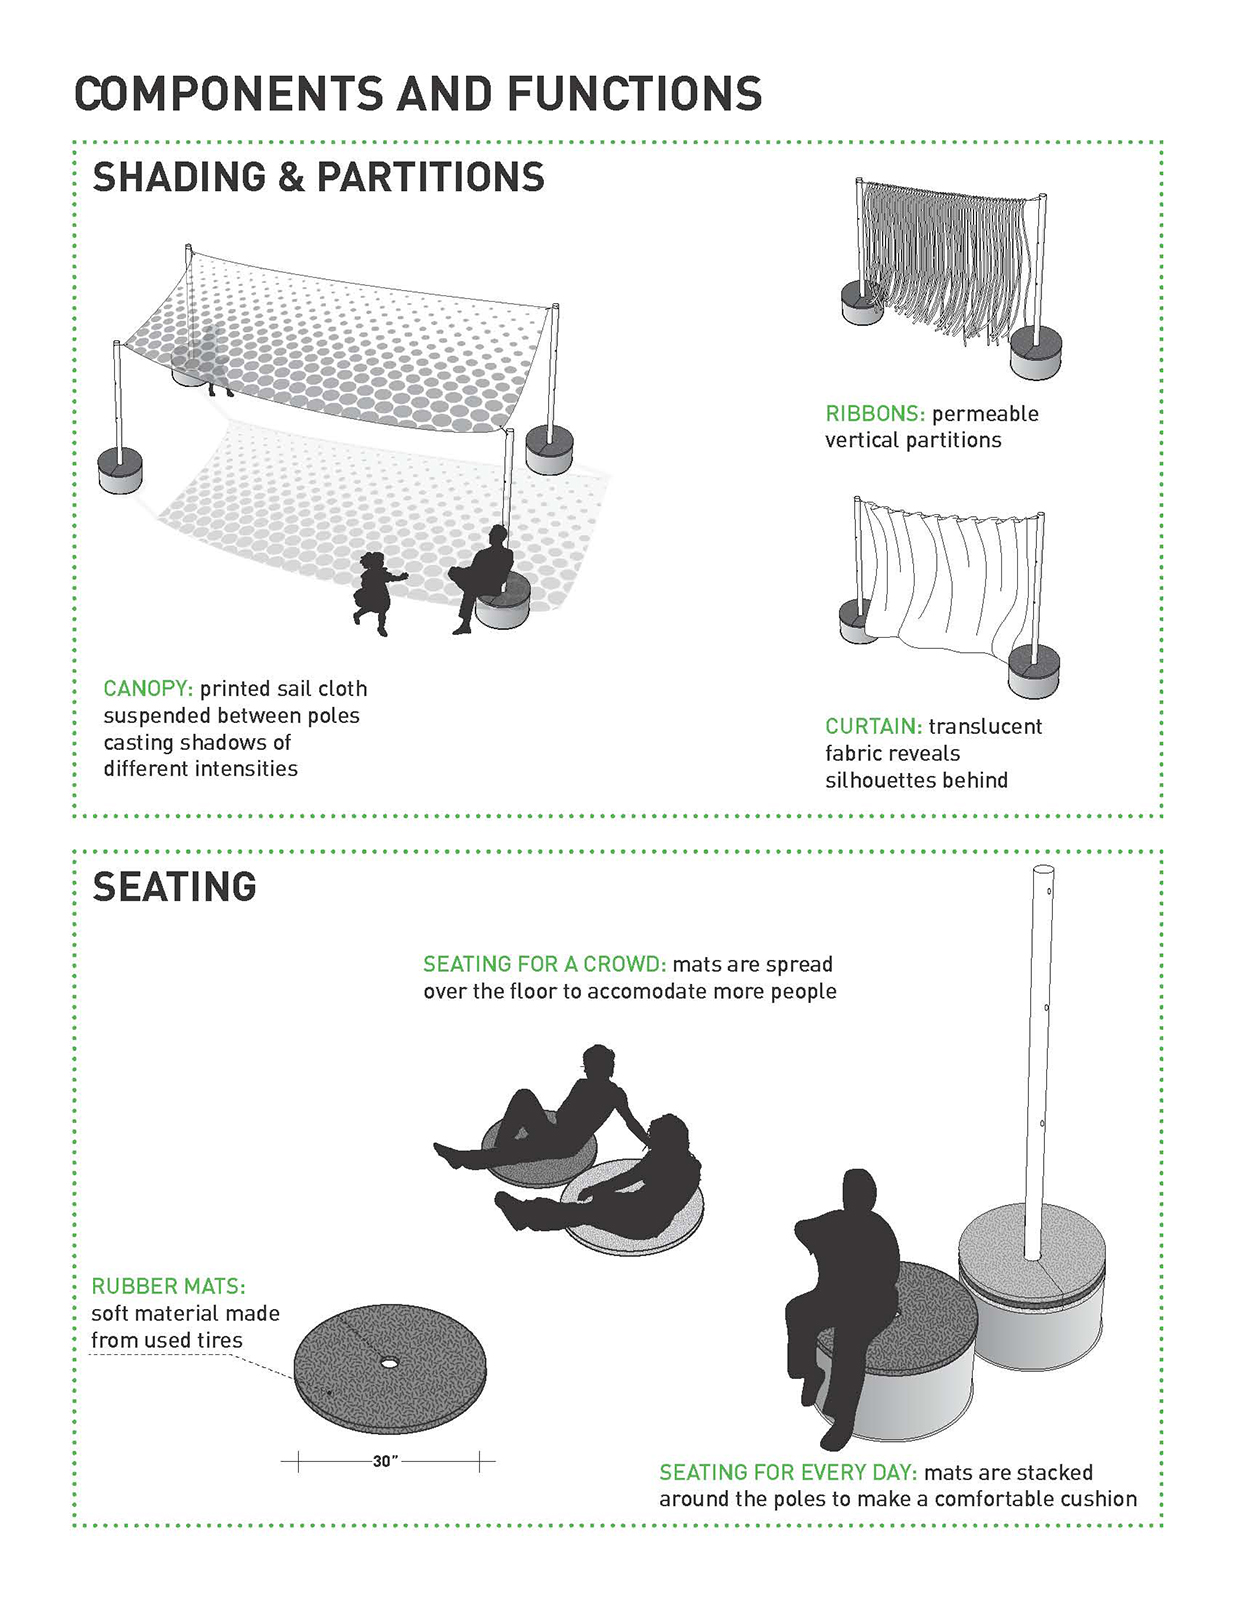 BA_Urban Living Room - NYC_Diagram2.jpg